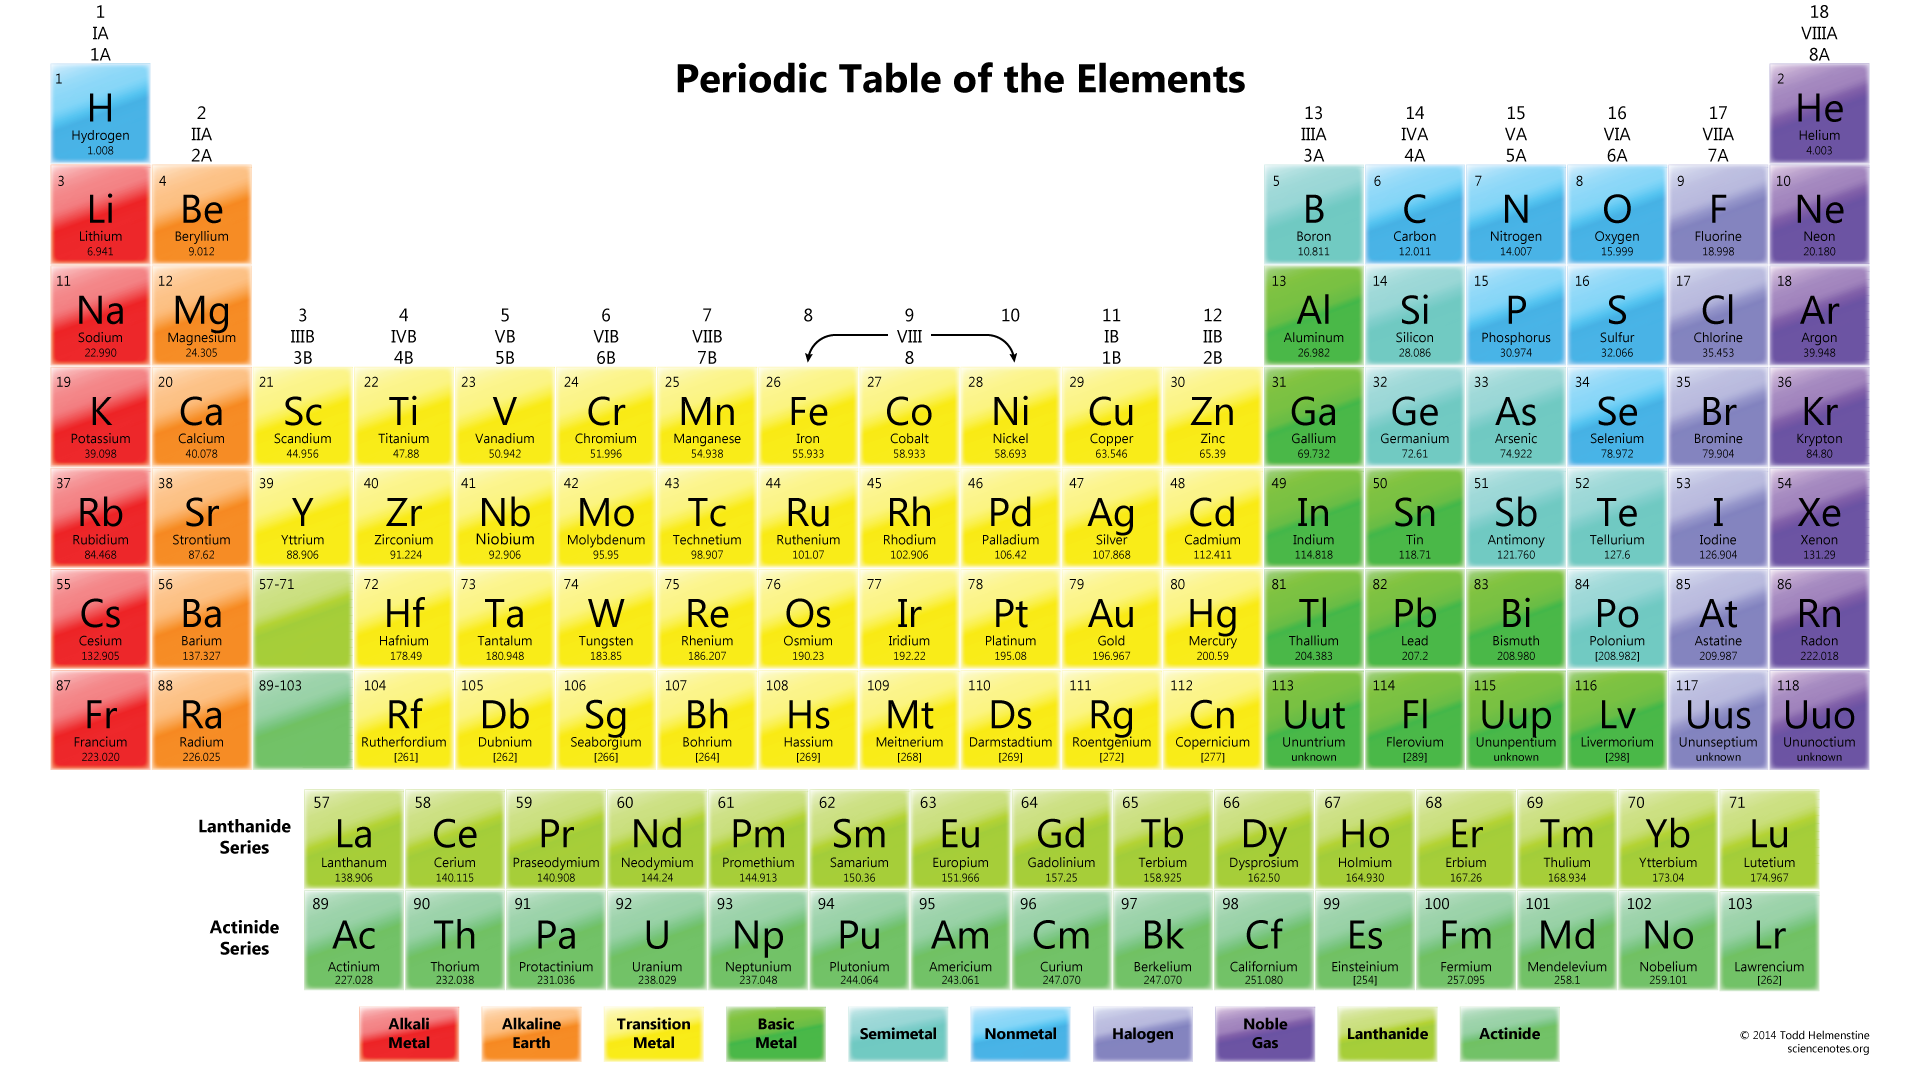 Usefulness of the periodic table in studying the chemistry of usefulness of the periodic table in studying the chemistry of elements gamestrikefo Images